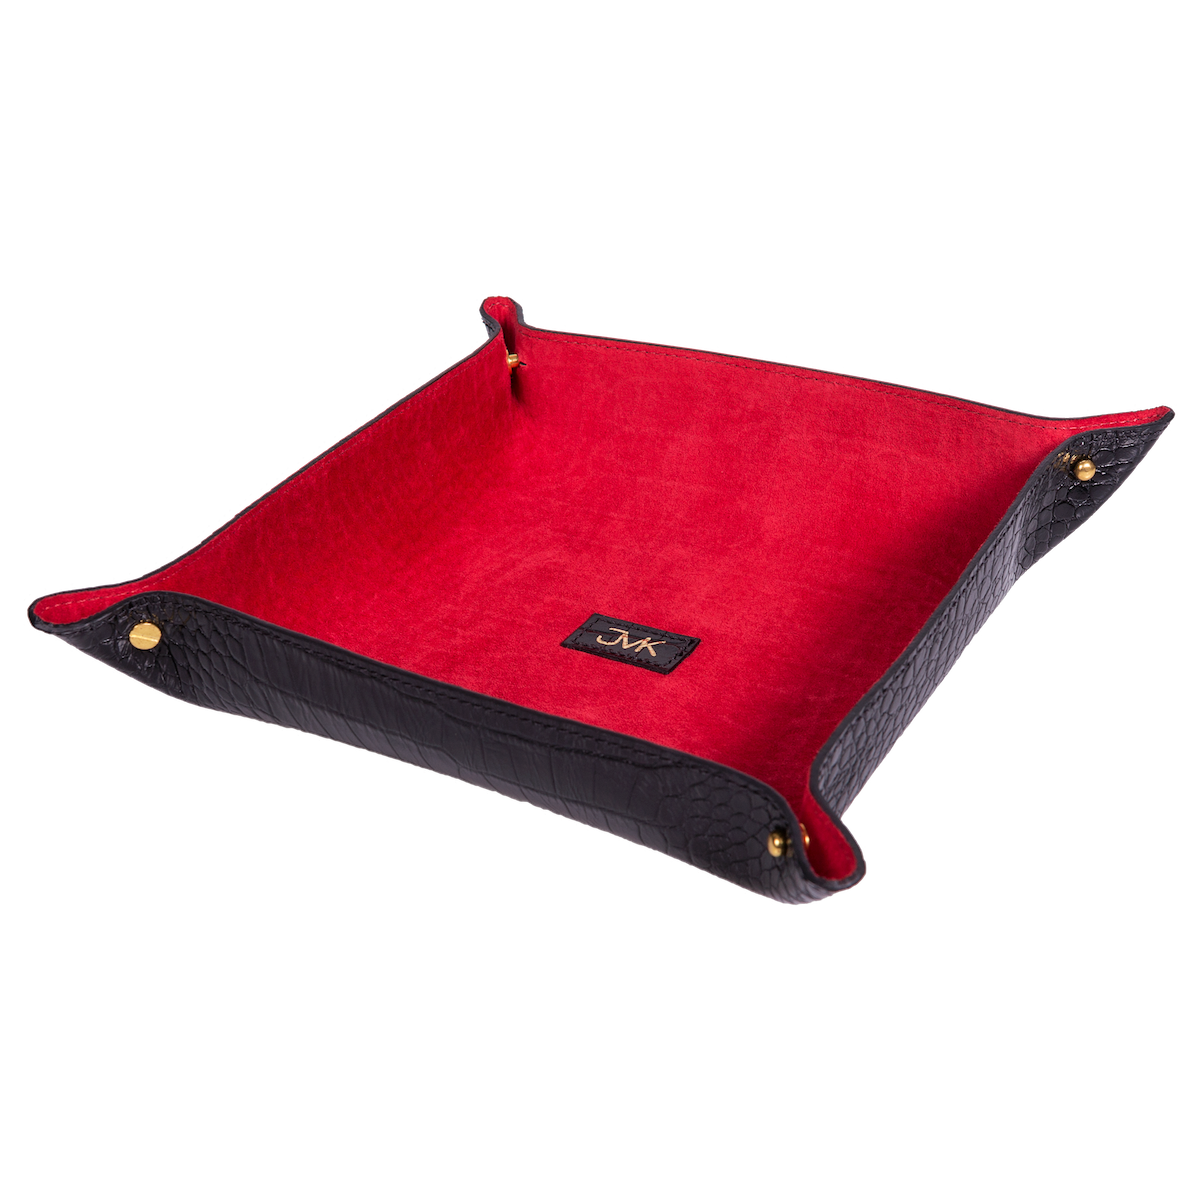 Change Tray, Croco Leather Black/Red, MAISON JMK-VONMEL Luxe Gifts